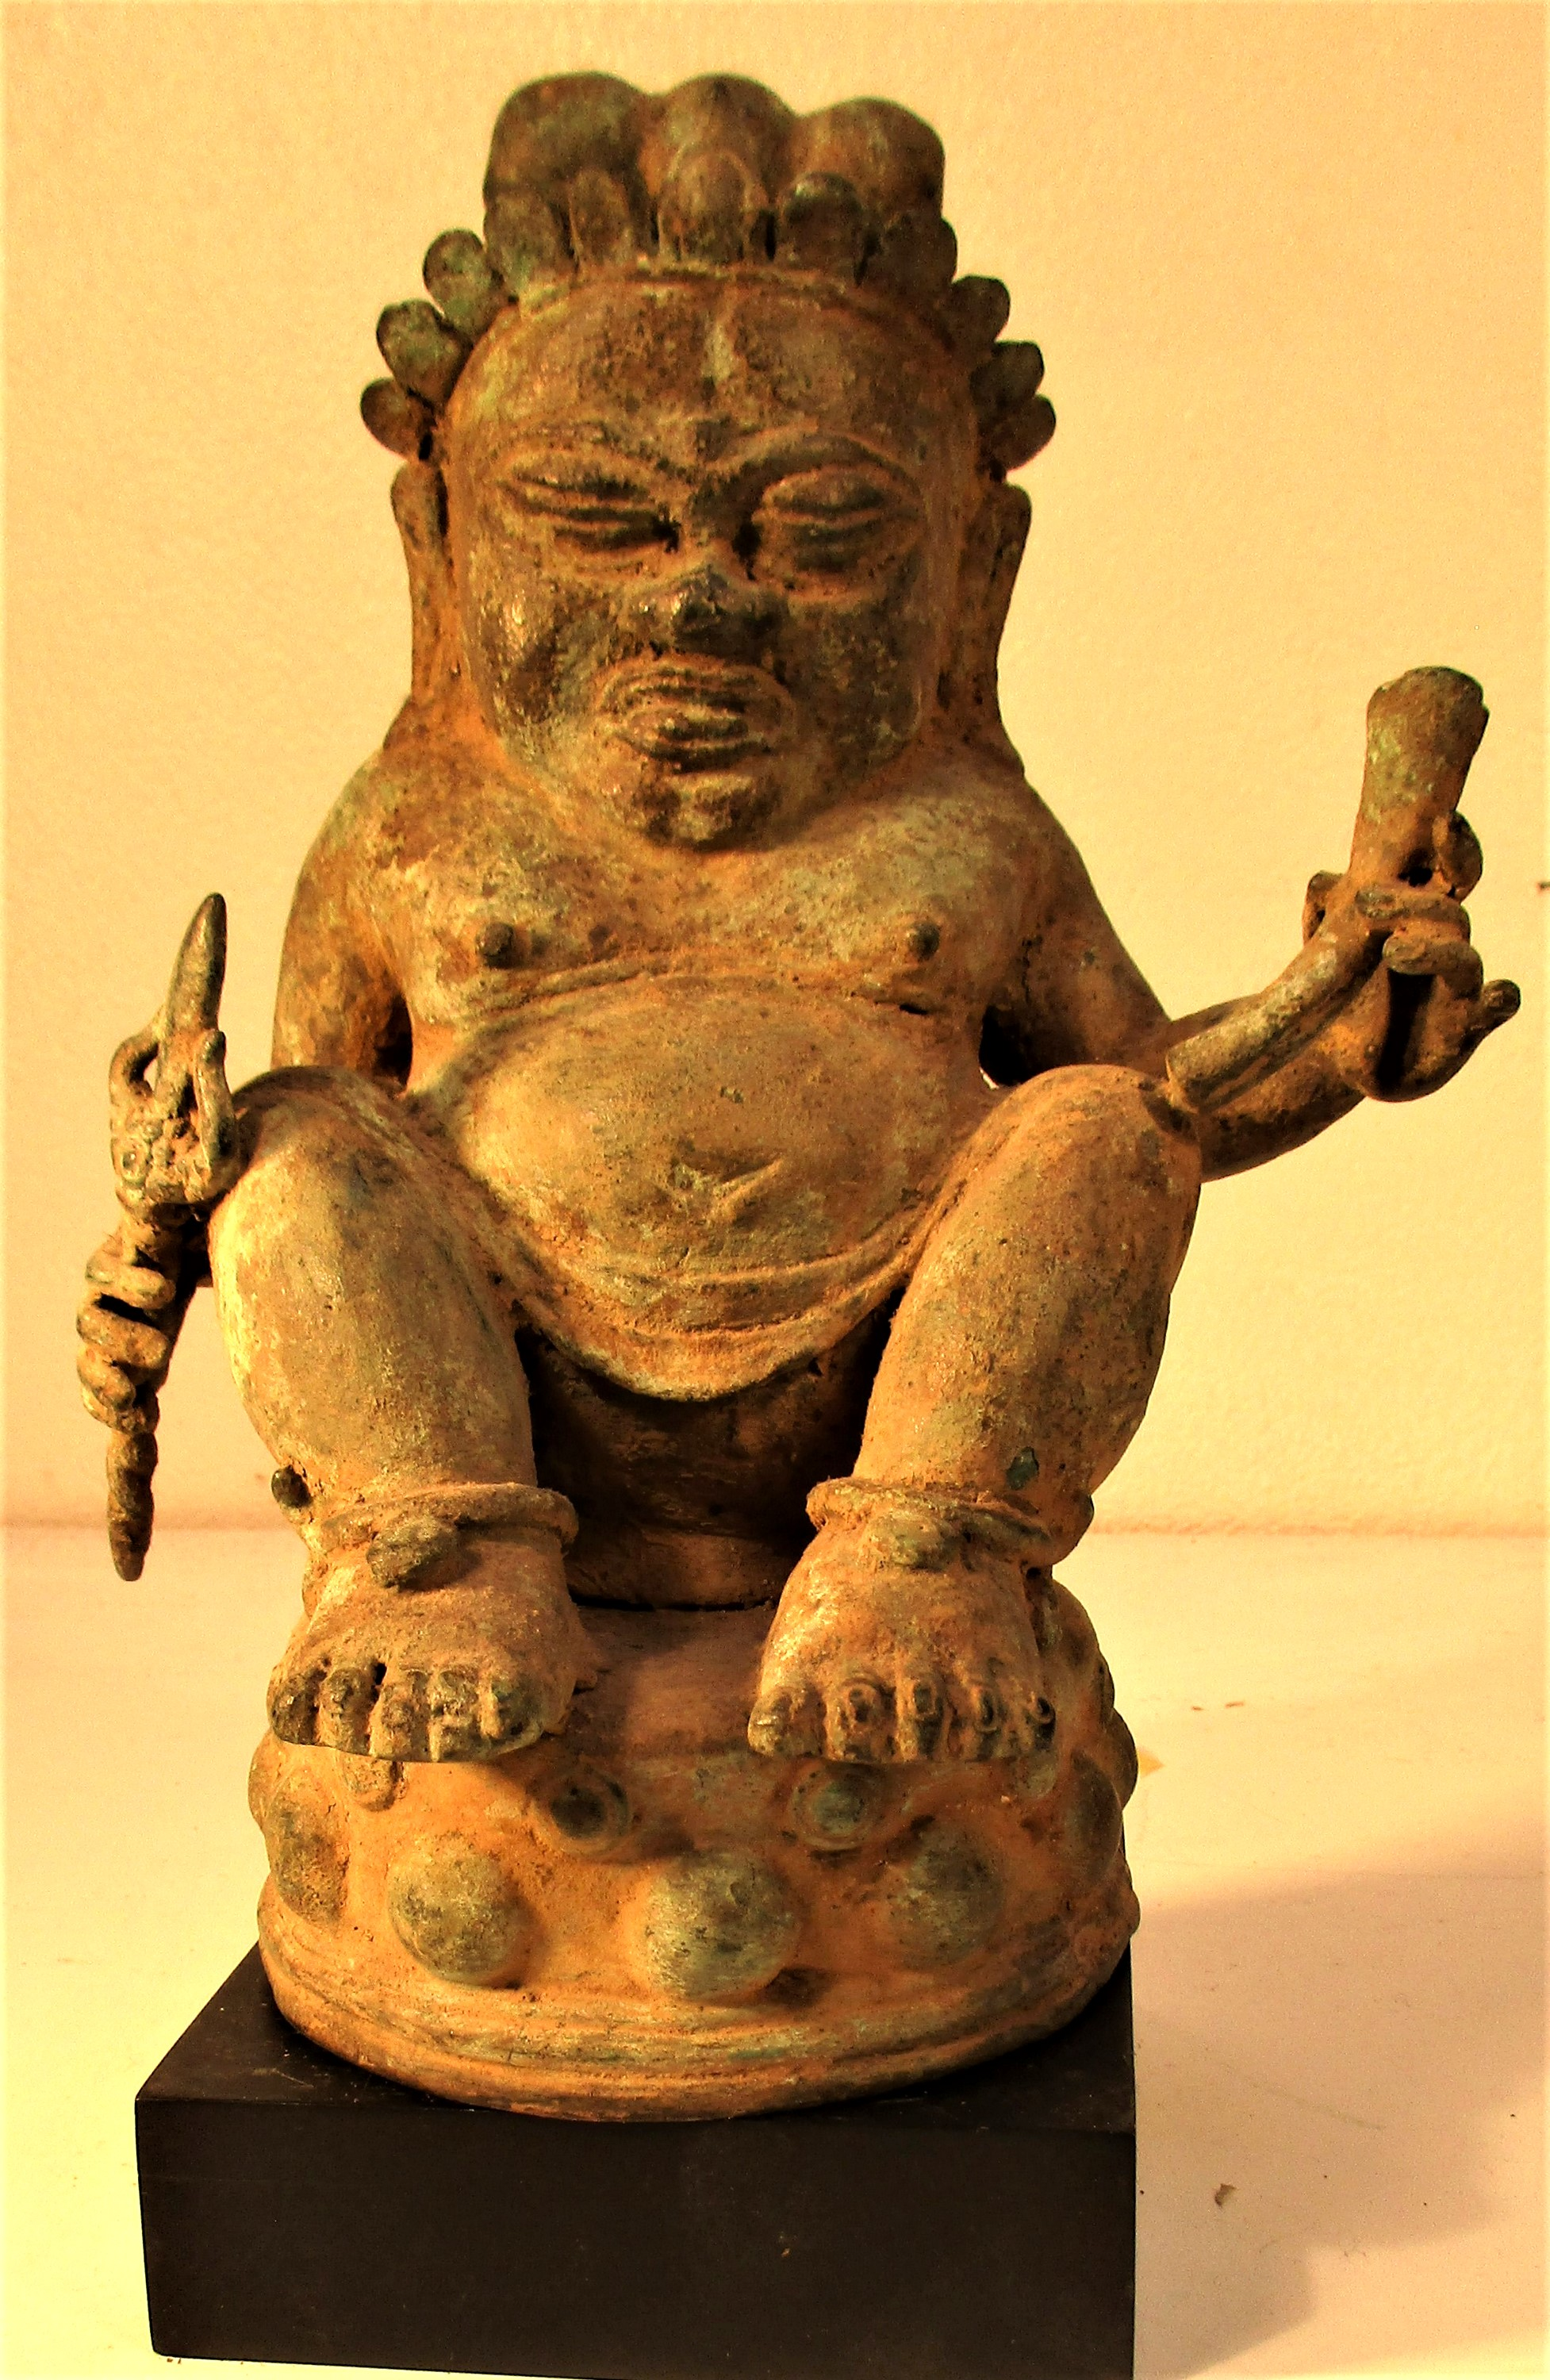 Bronze Chinese Buddha, cast in Bali. Buddha is holding a torje and a horn. 25 x 15cm. Early 21st c.